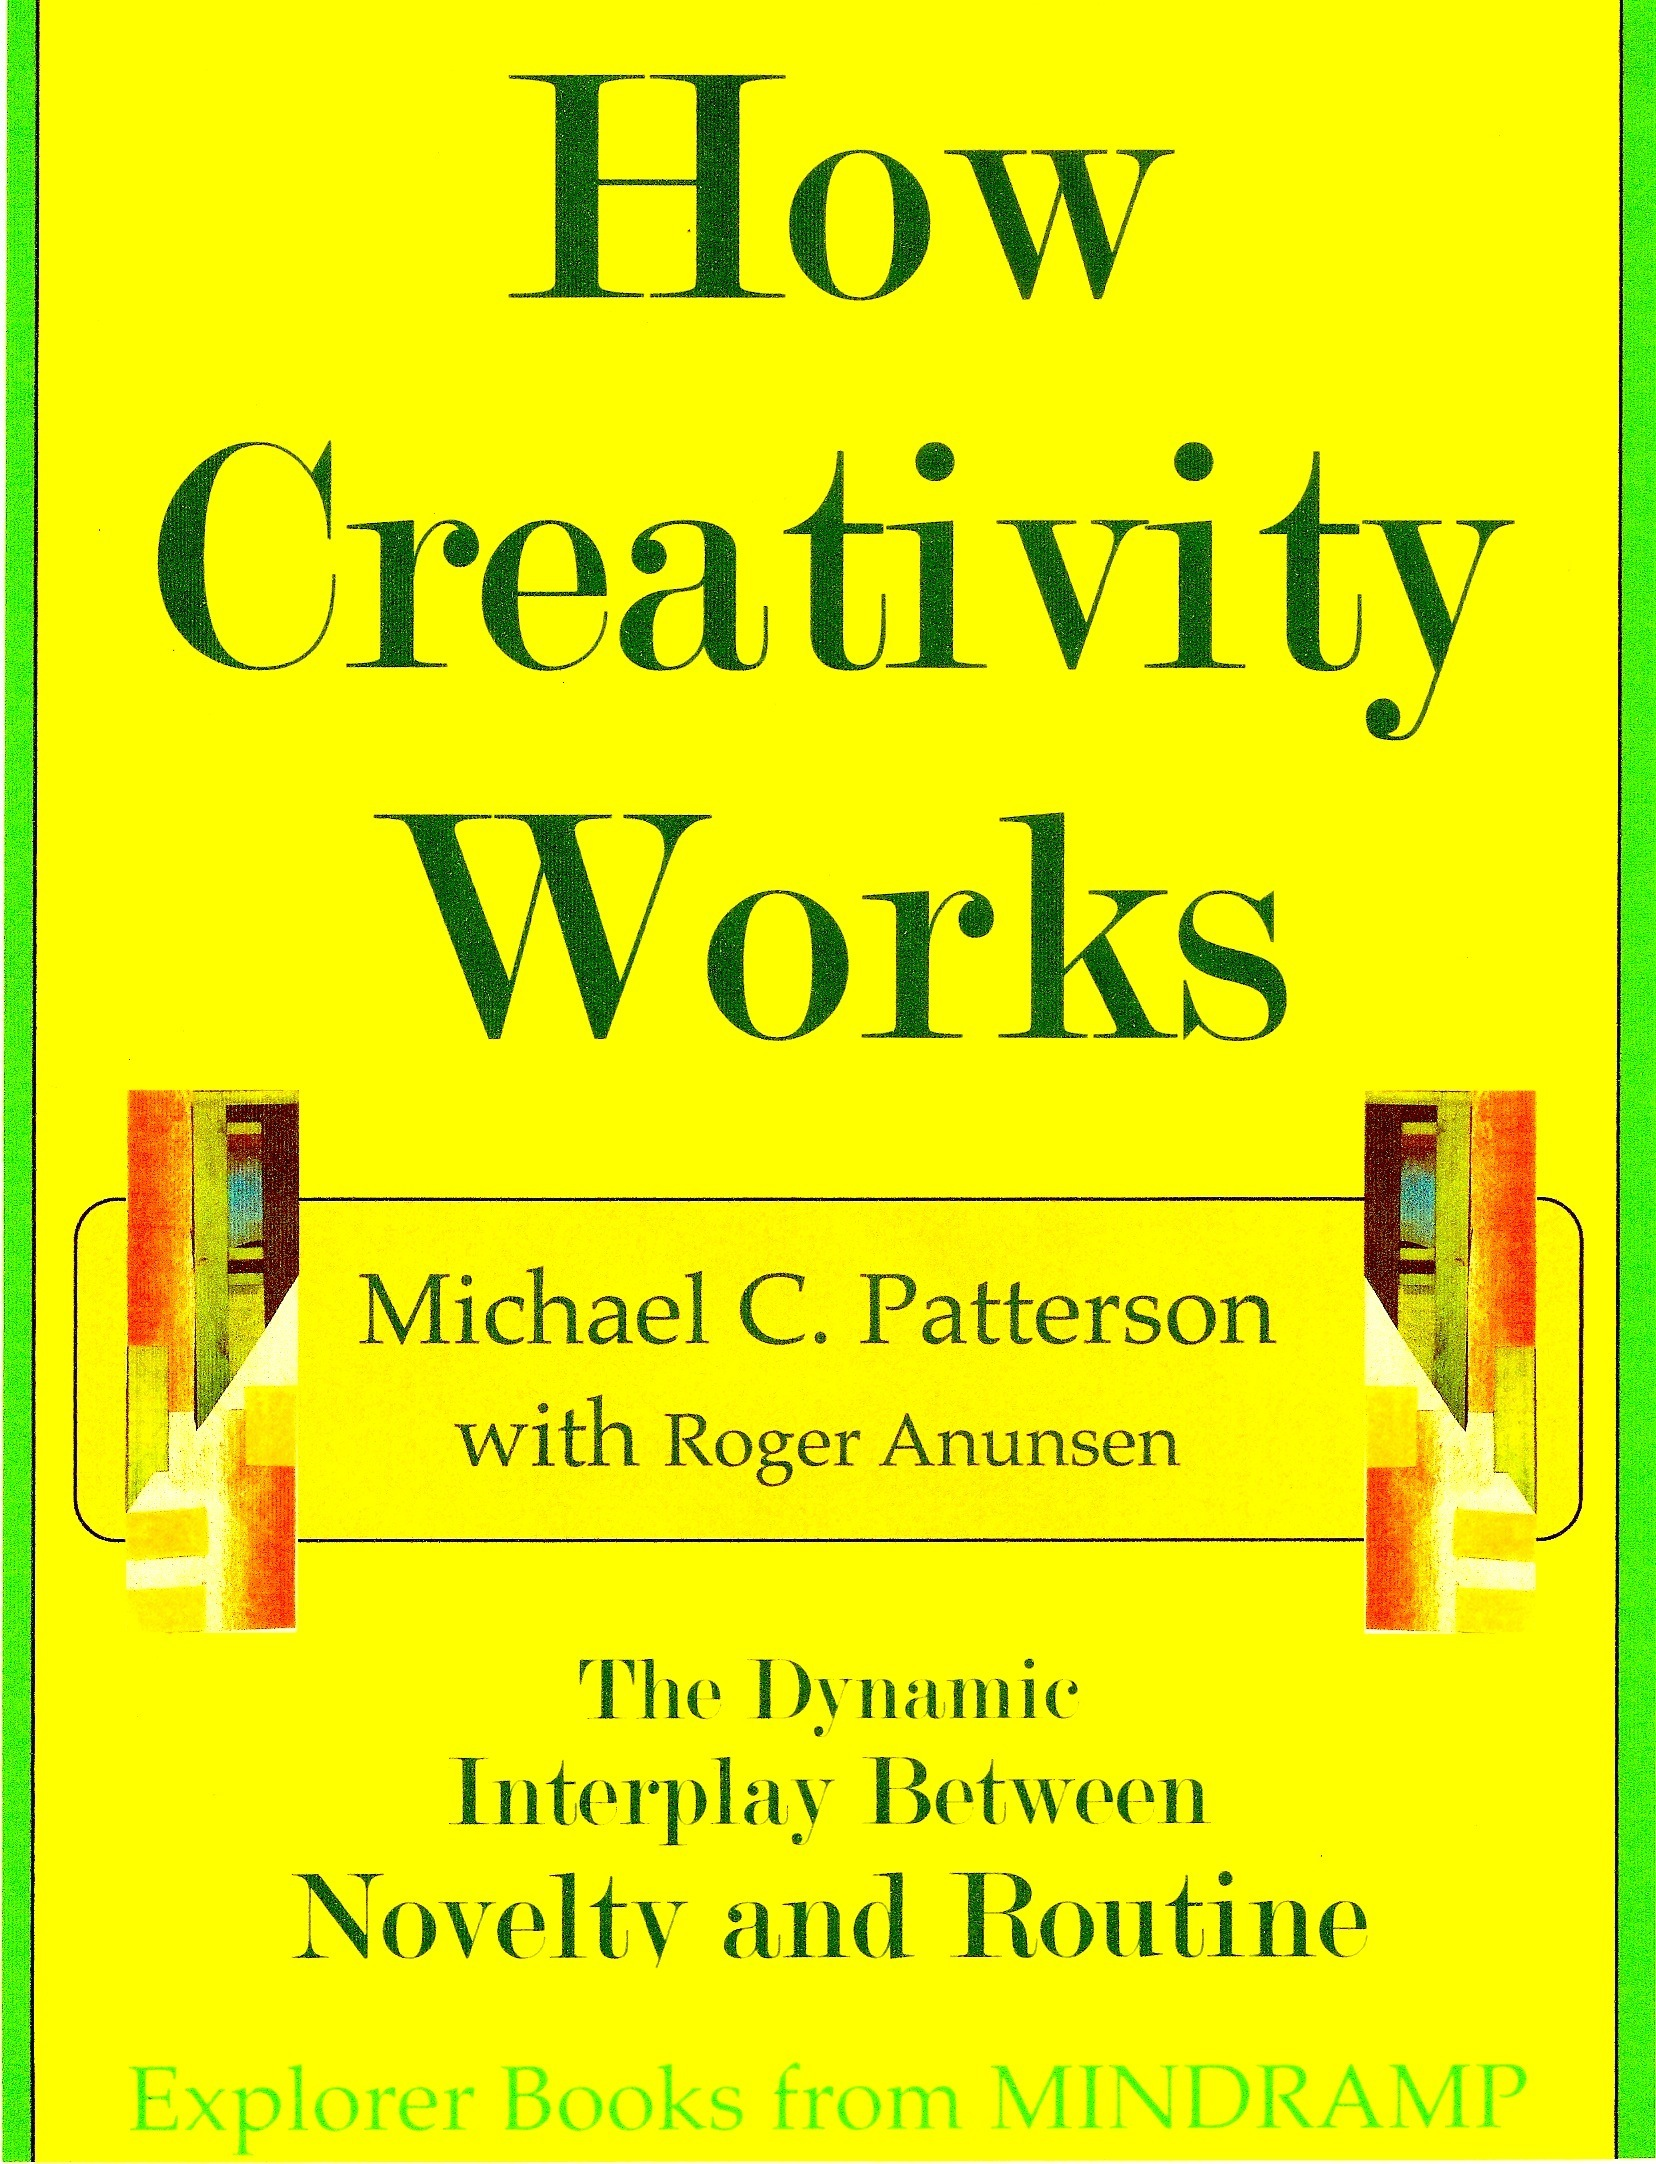 How Creativity Works: The Dynamic Interplay of Novelty and Routine